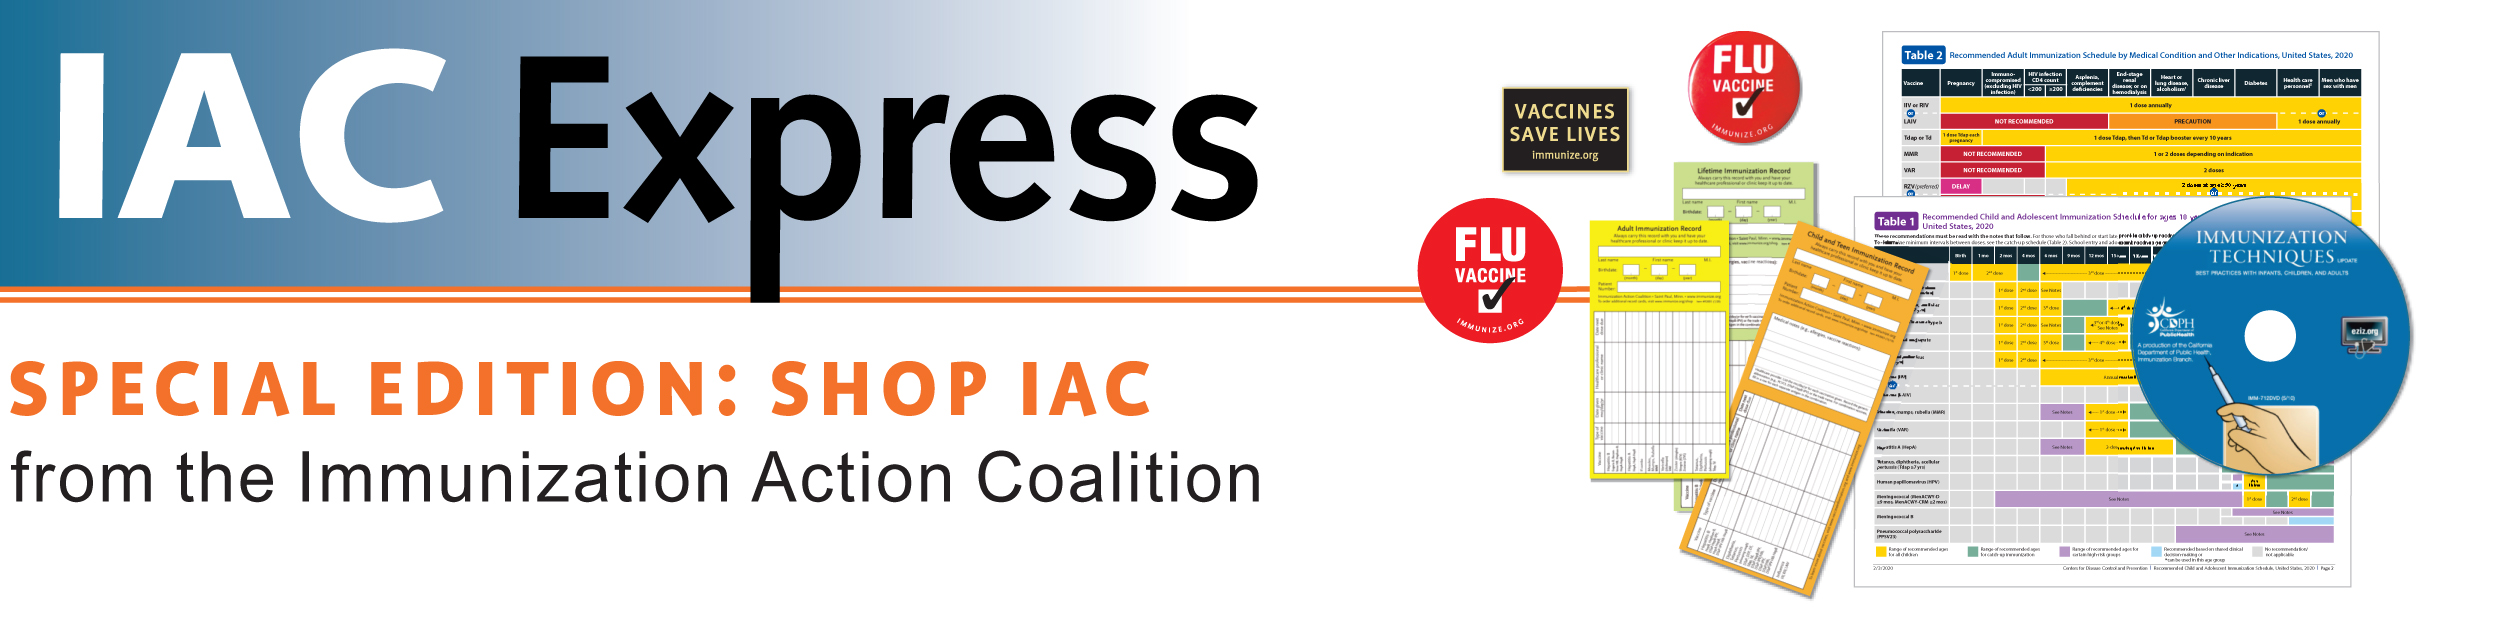 IAC Express: Weekly immunization news and information